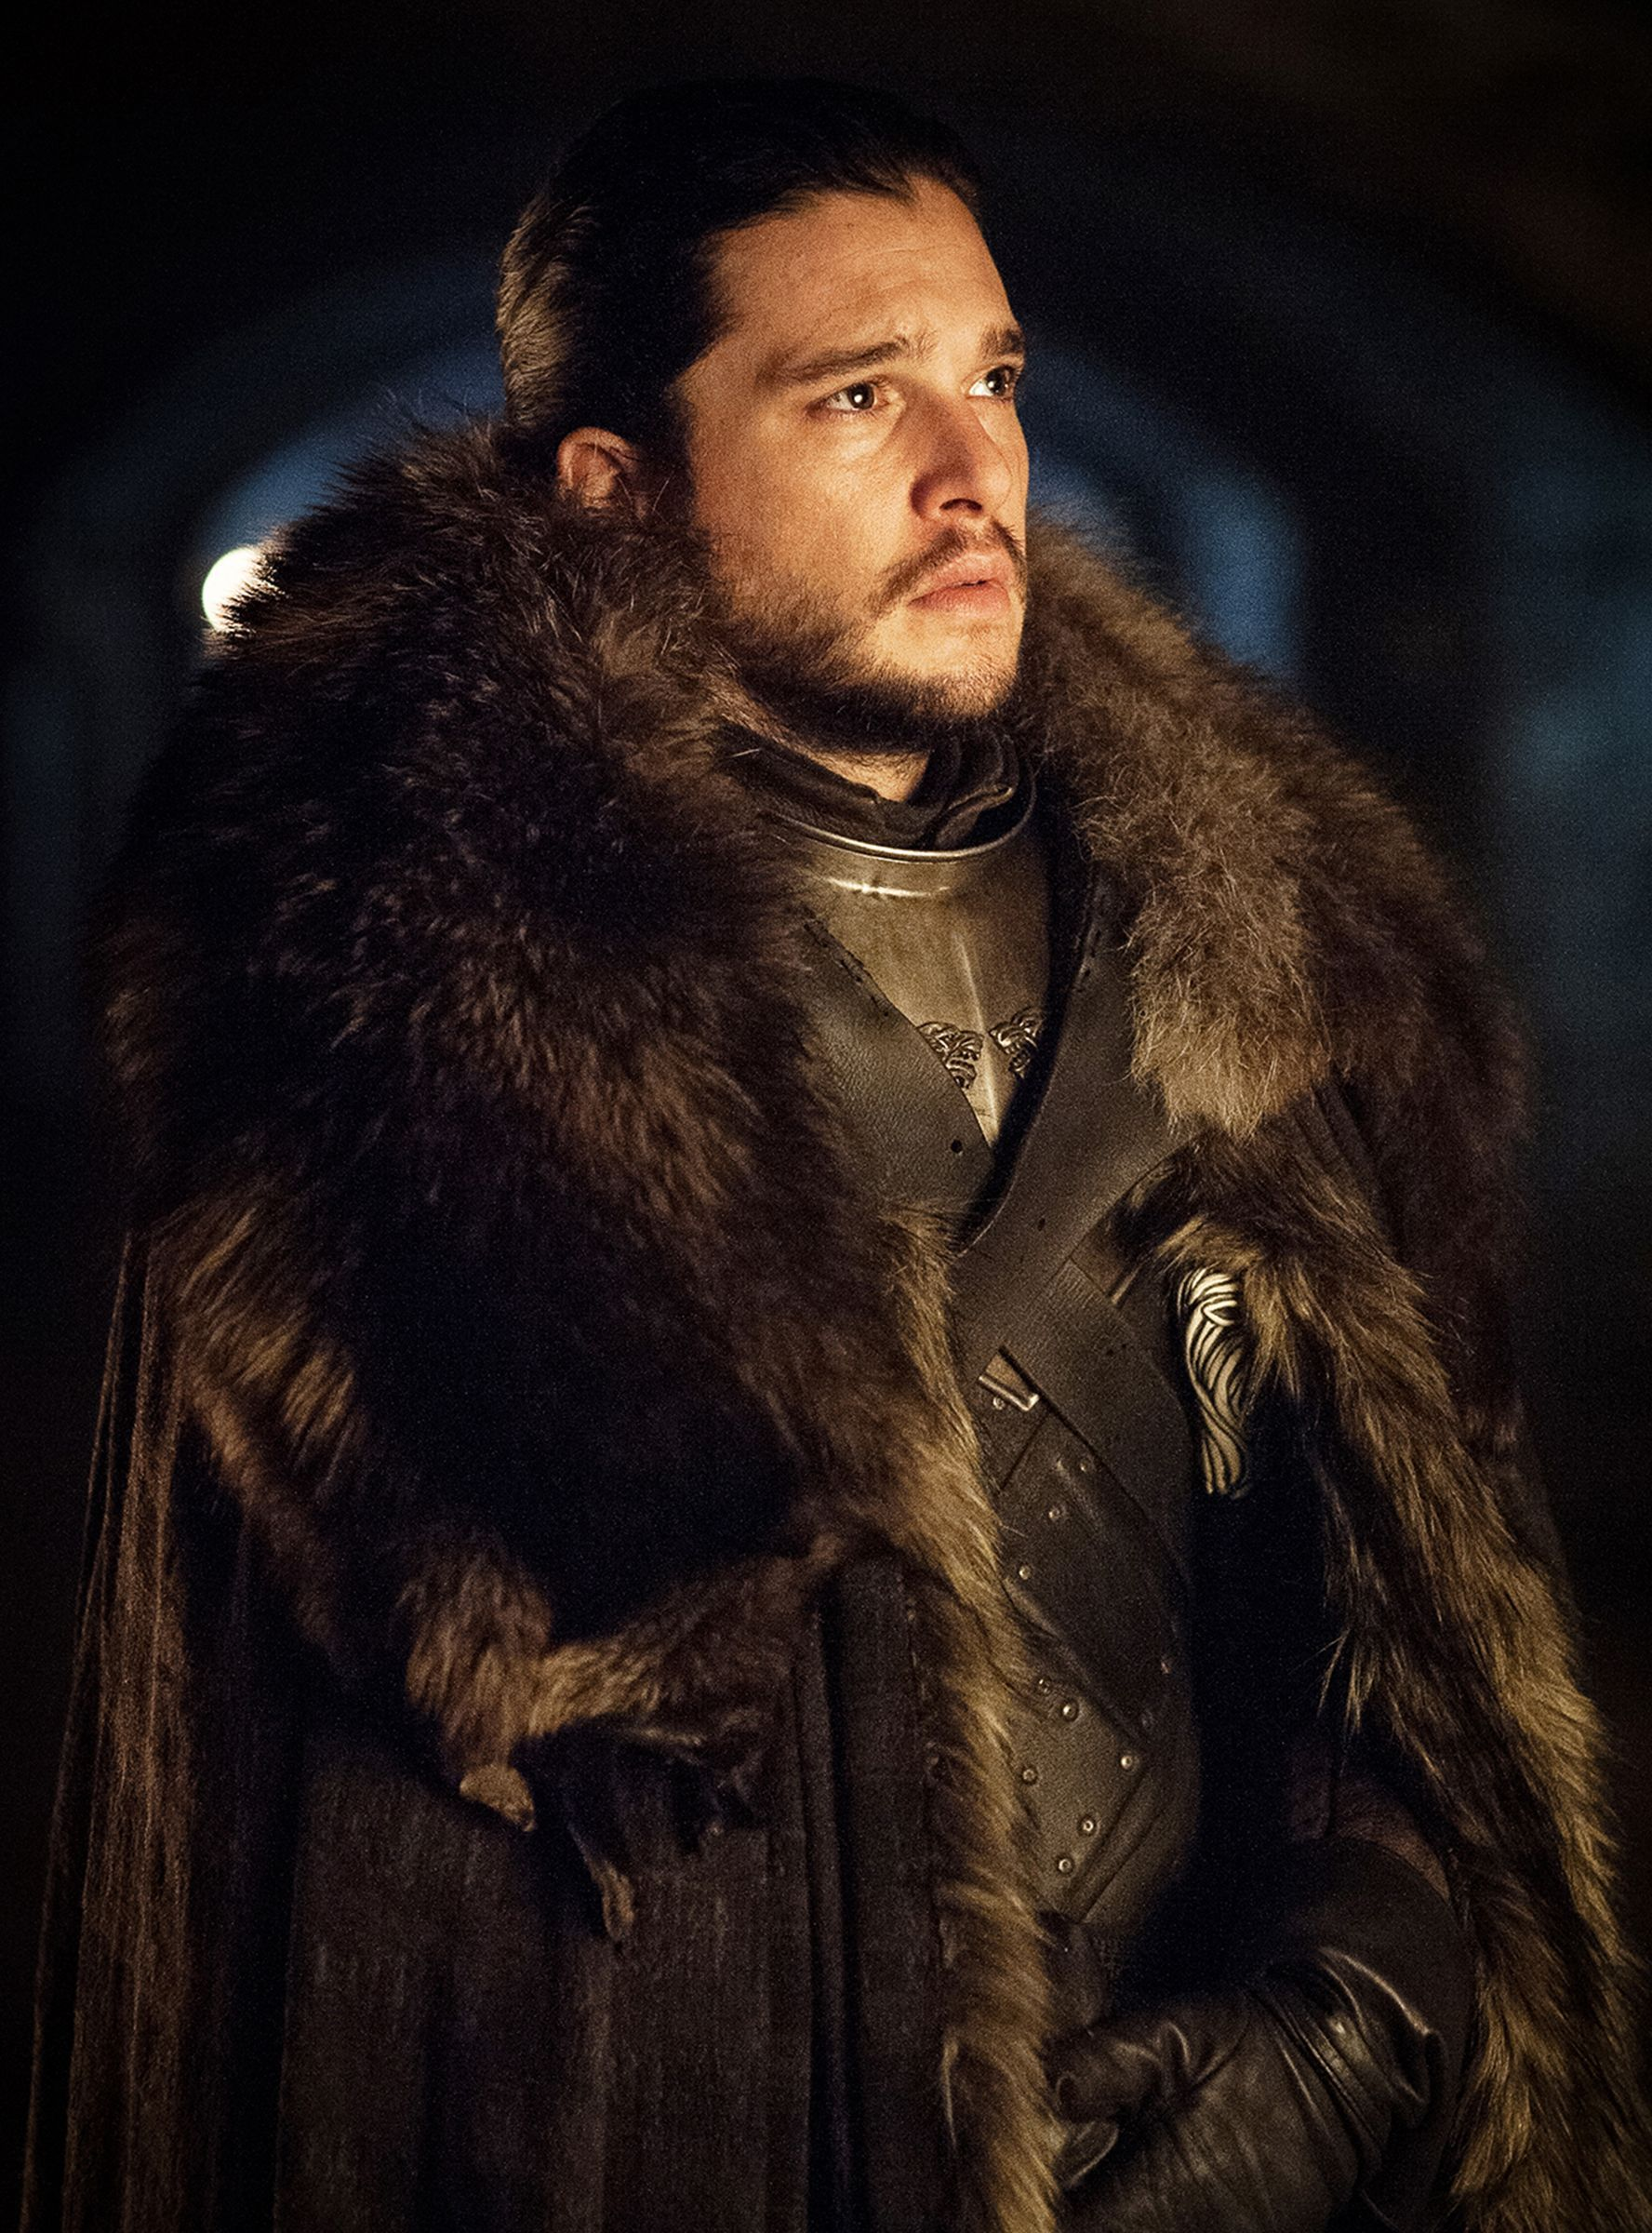 Does This Tiny Detail Mean Jon Snow Is Going To Bend The Knee Jon Snow Game Of Thrones Theories John Snow